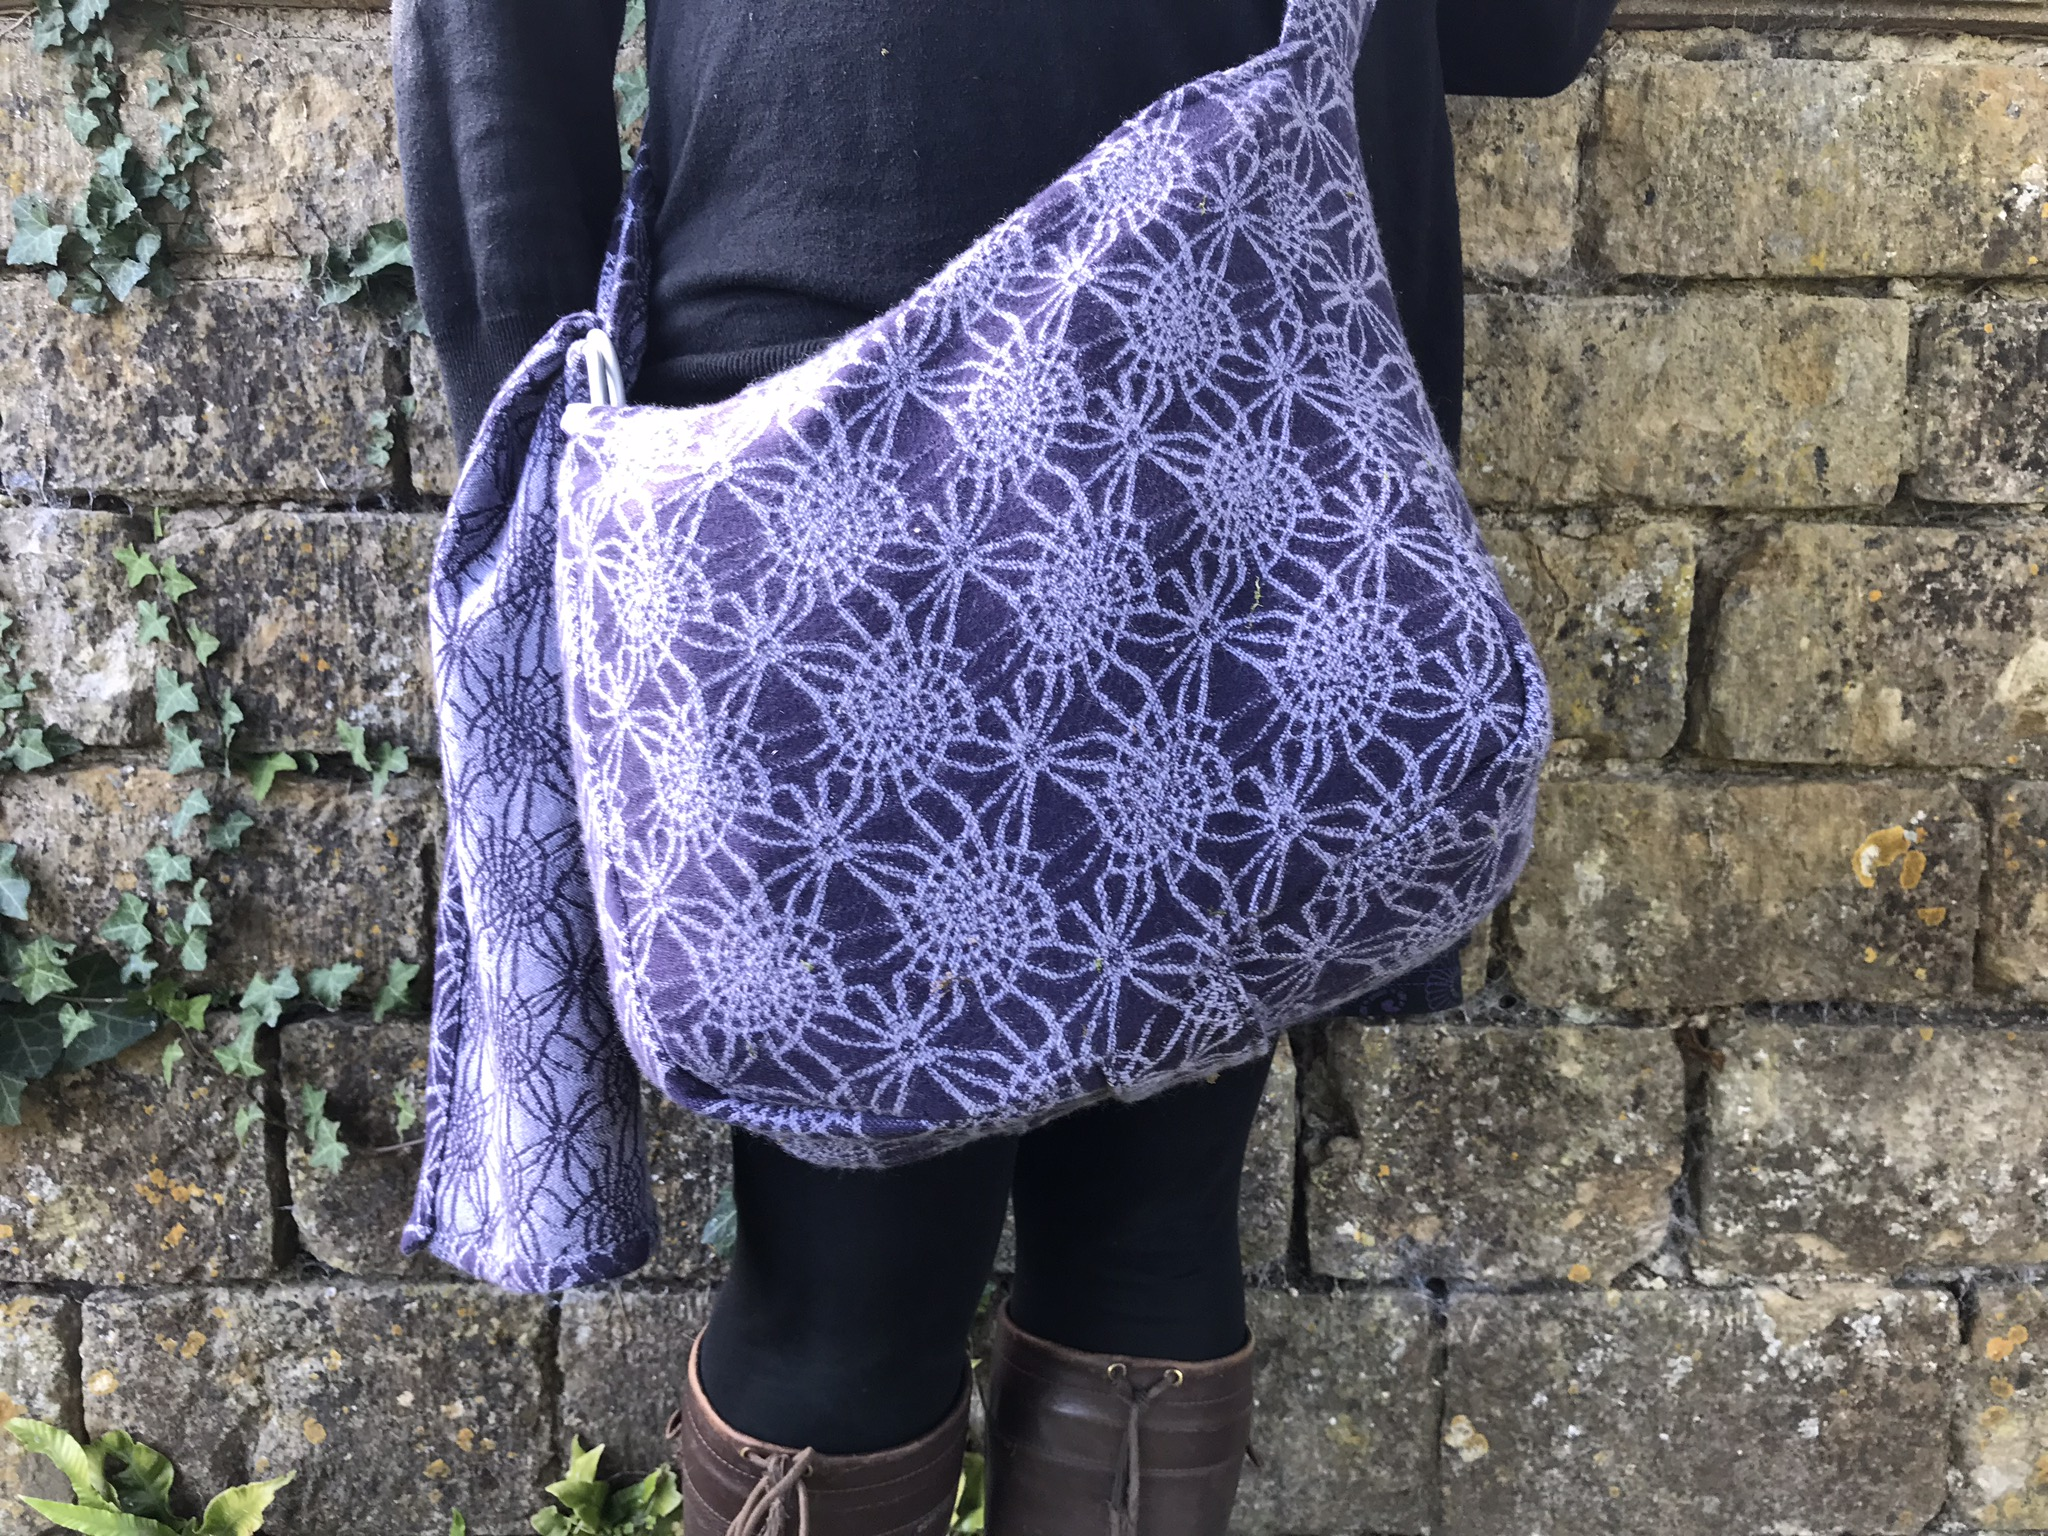 Absolute Bobbins Babywearing Bag made from Firespiral Grape Twilight Fractals woven wrap fabric